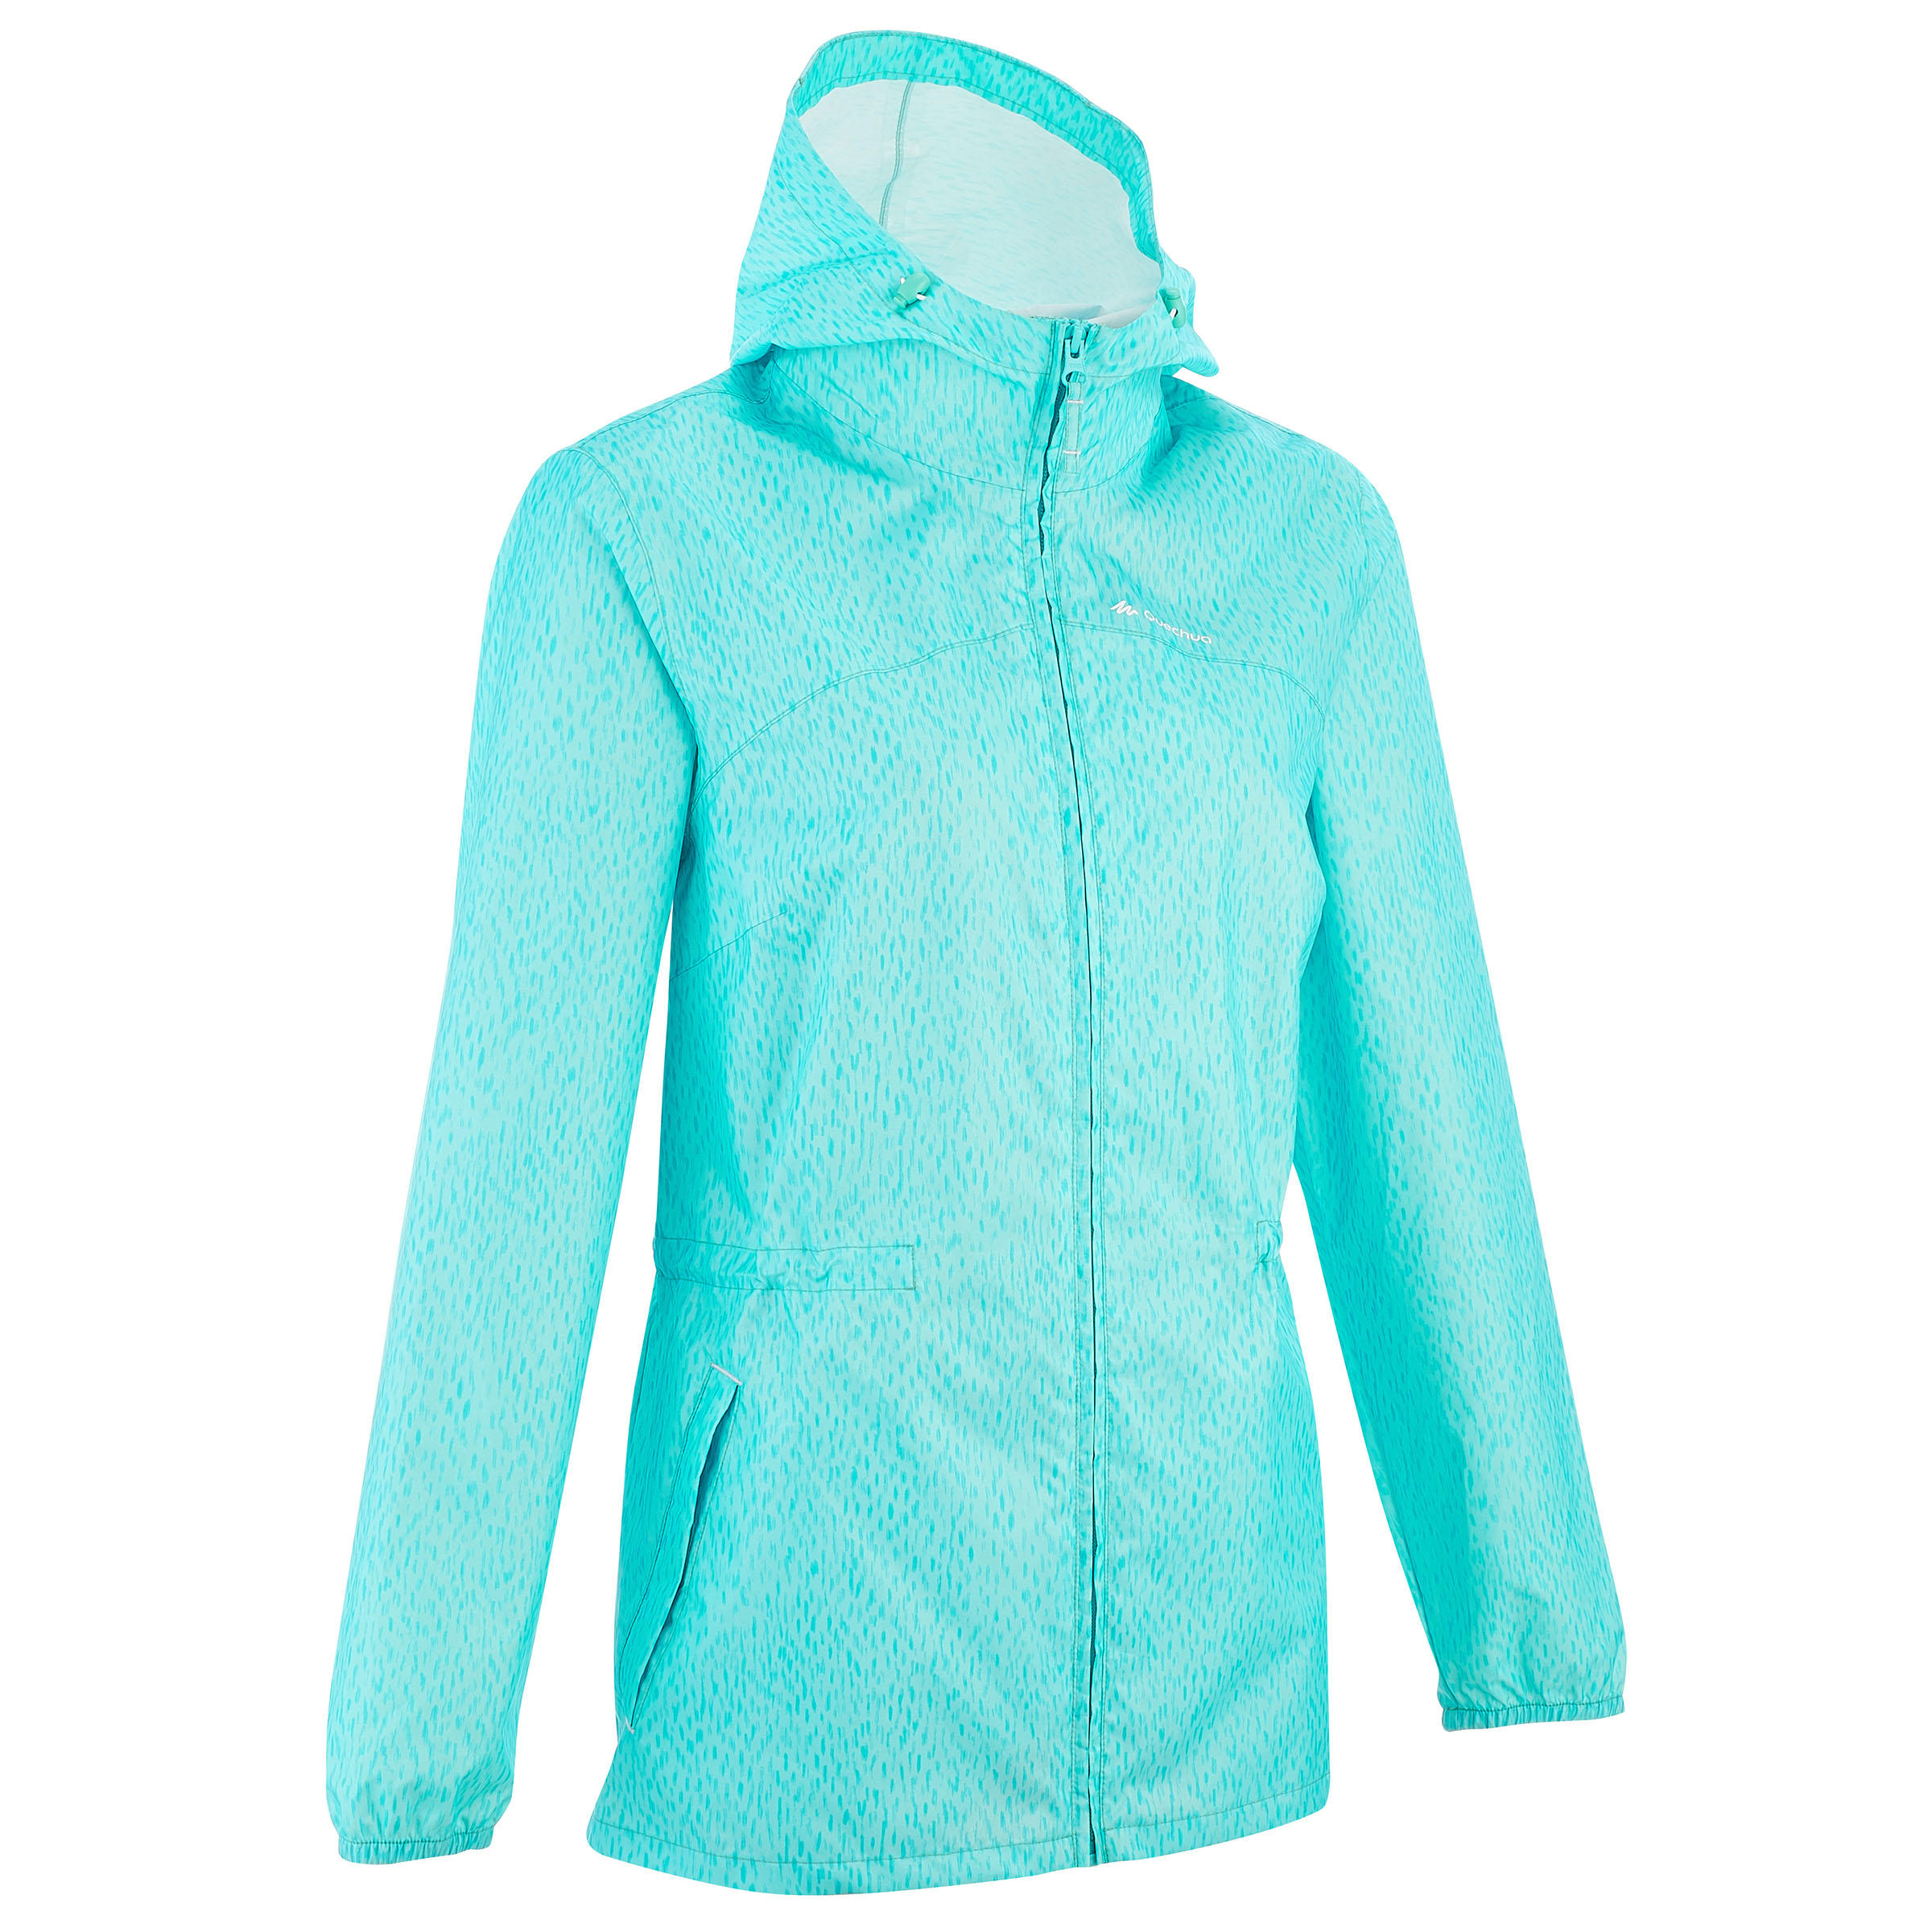 Women's Raincoat...